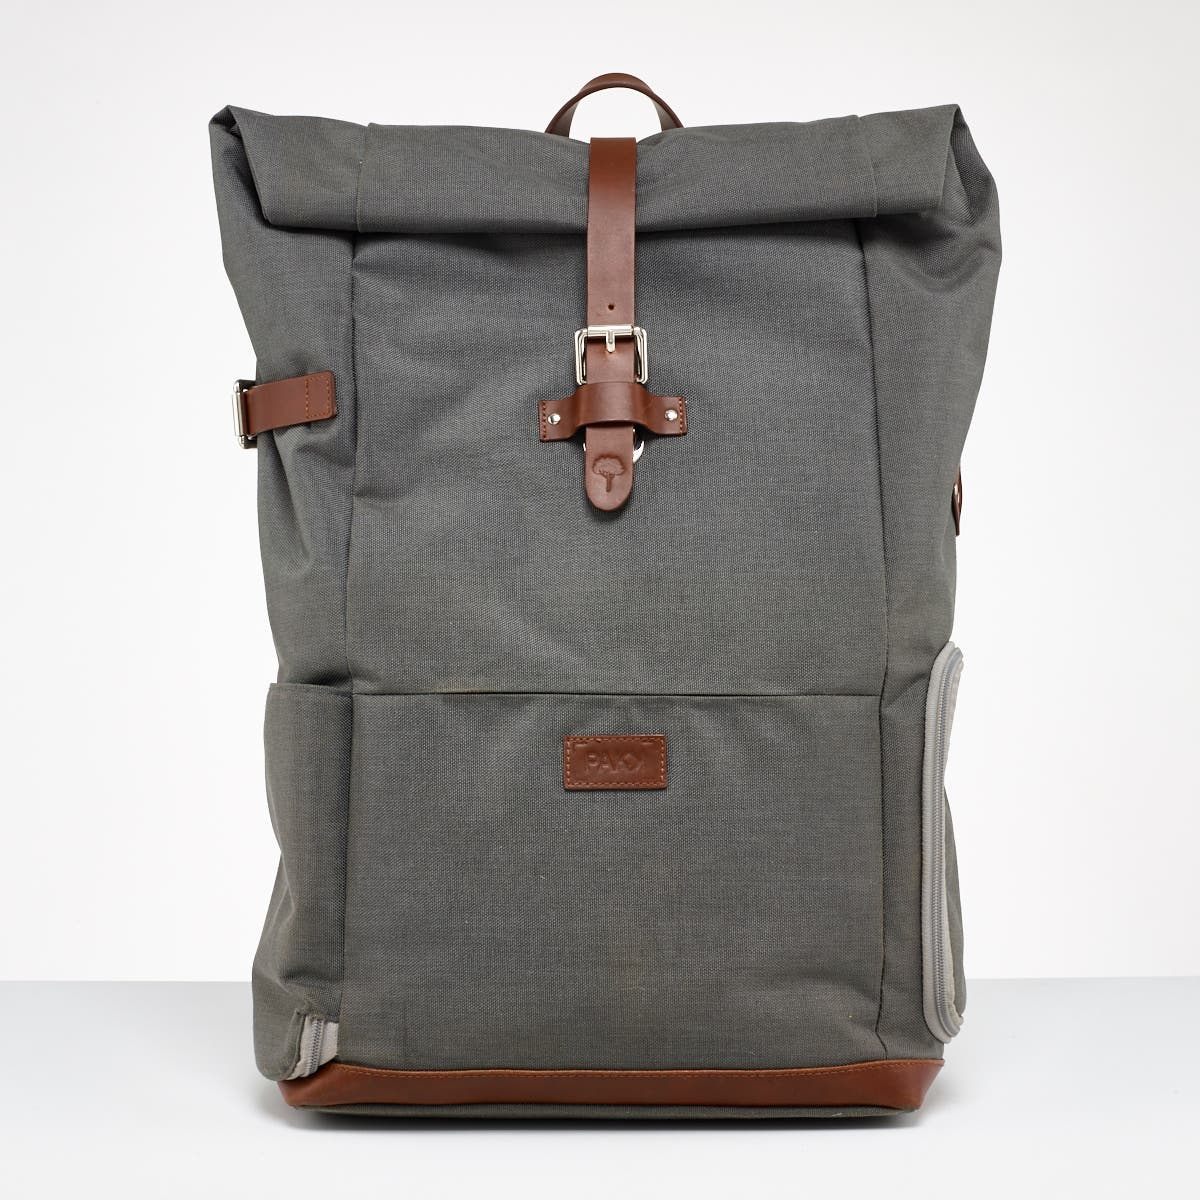 The Pakk Promises to Be a Versatile and Stylish Backpack for Photographers